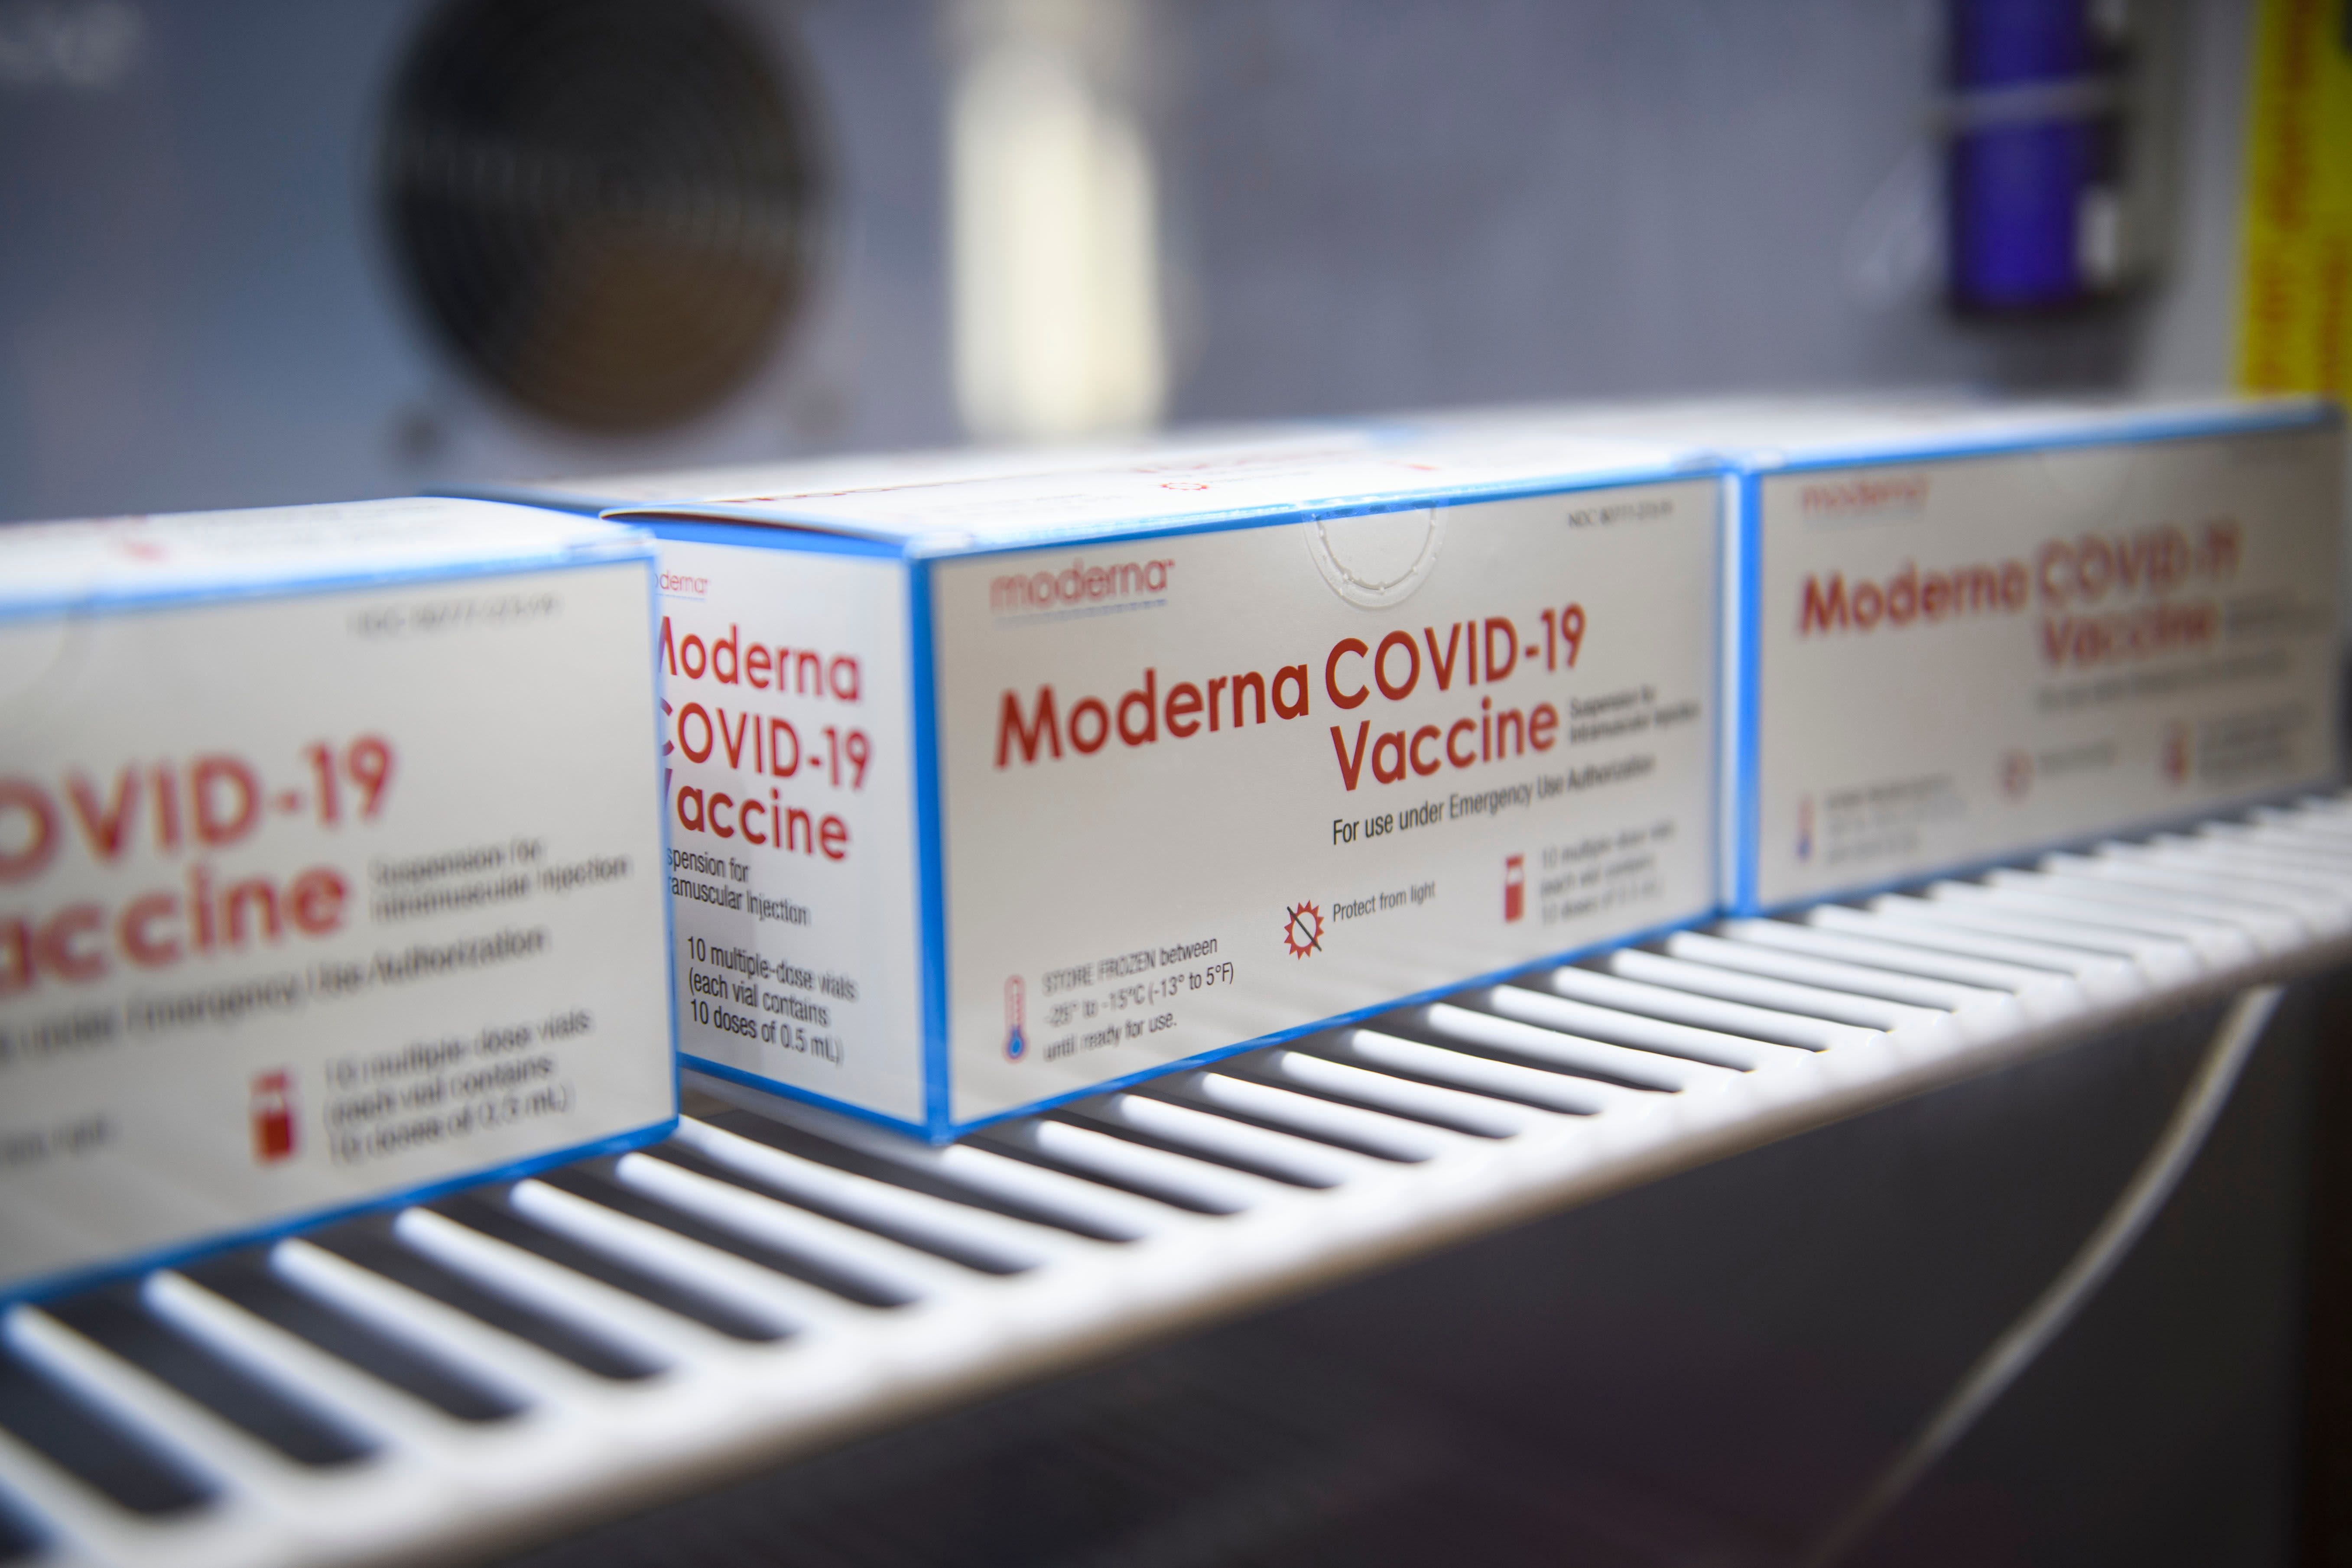 Moderna Covid vaccine can remain stable at refrigerated temperatures for 3 months, company says